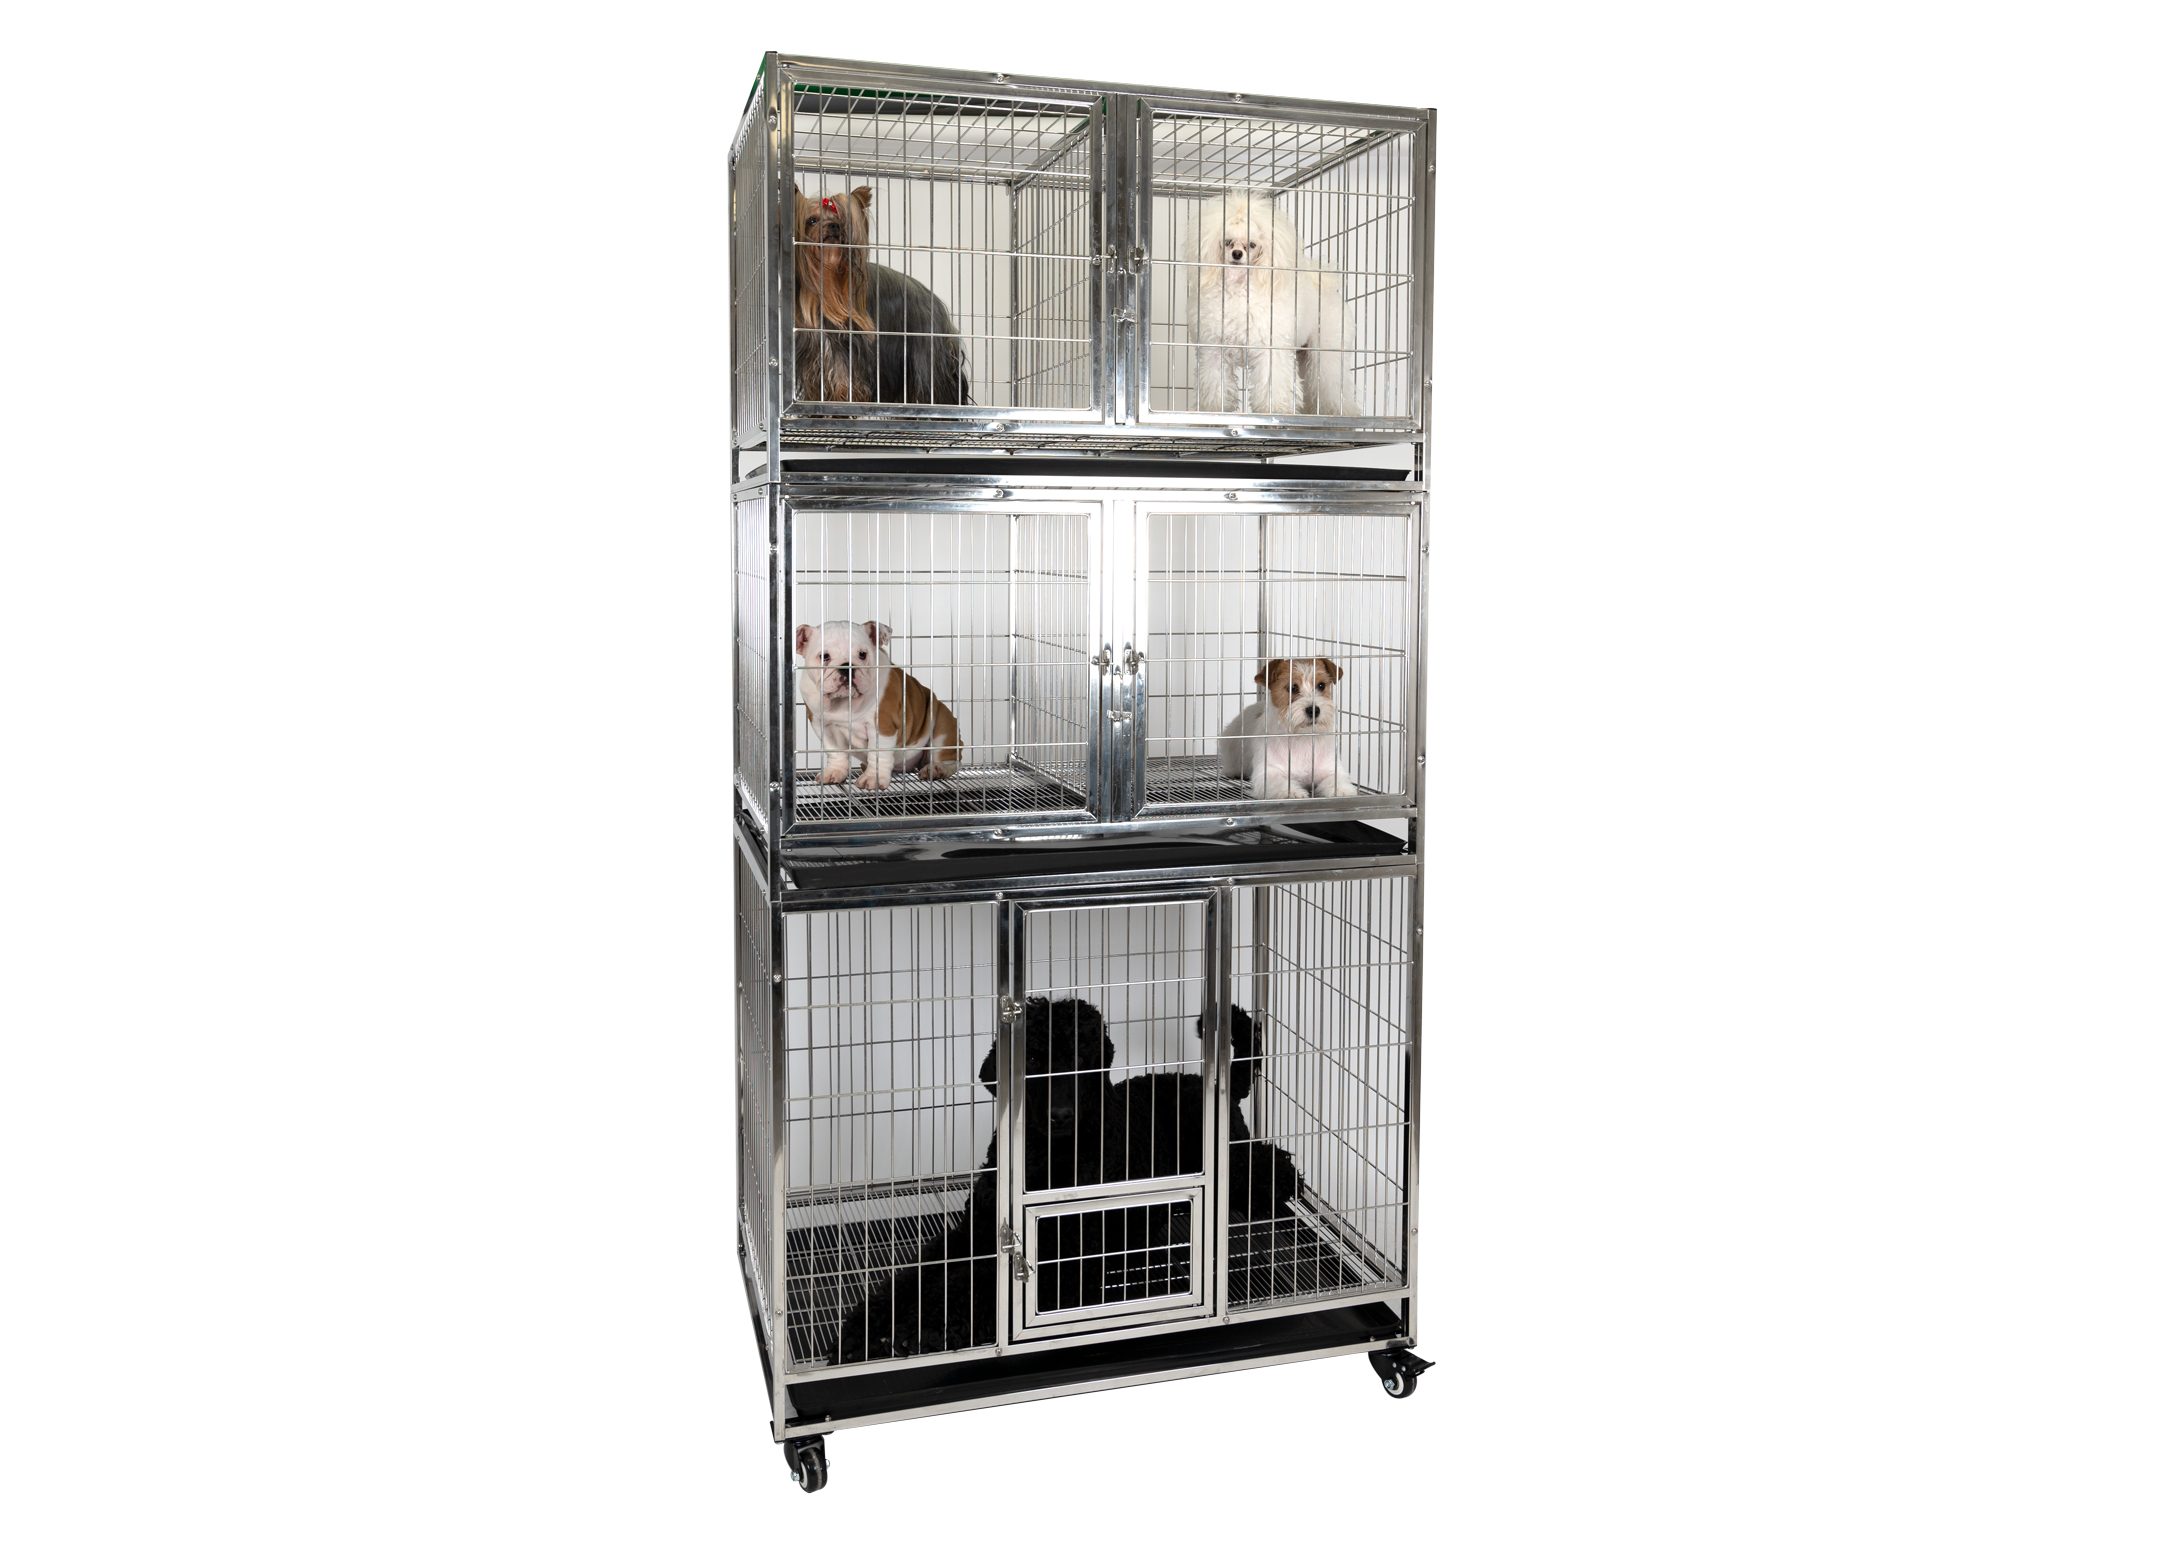 Groom-X Waiting Kennel Stainless XL 110x72x86cm